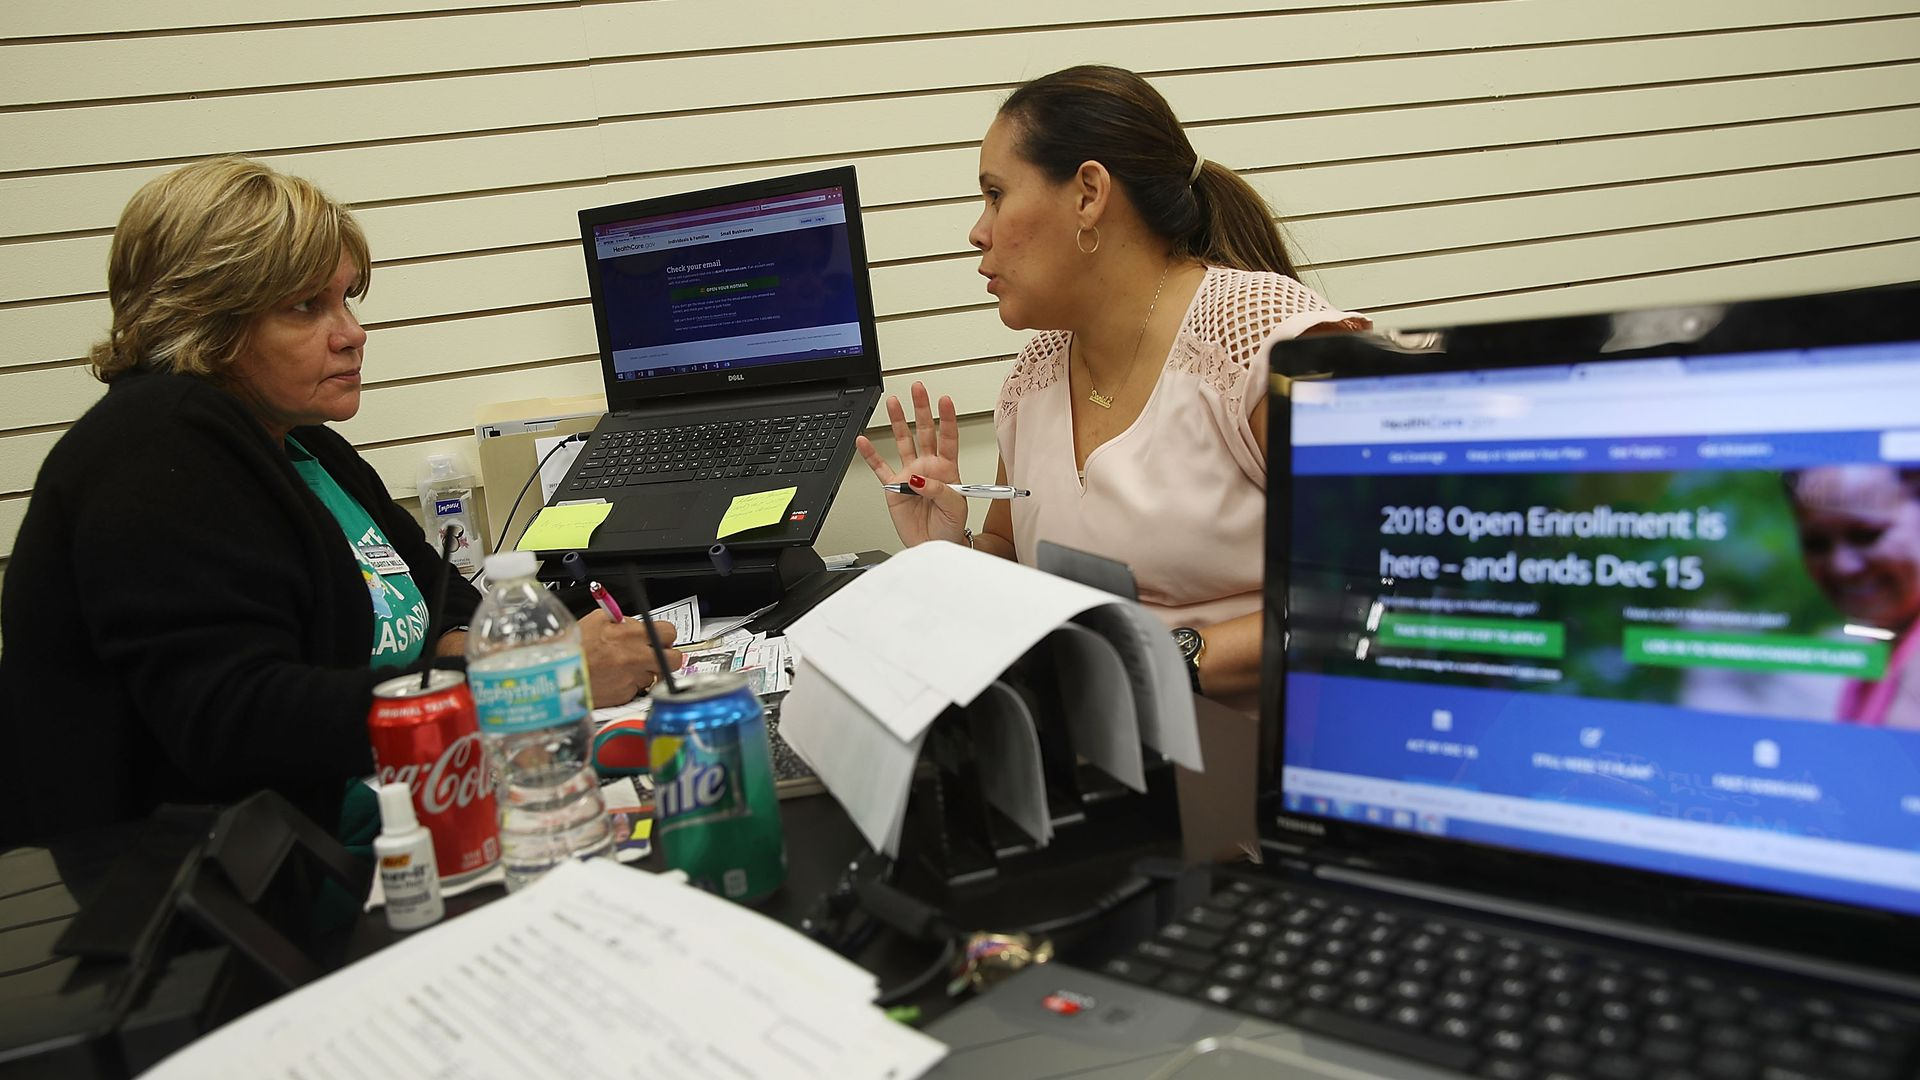 A health insurance broker helps a woman sign up for health insurance.